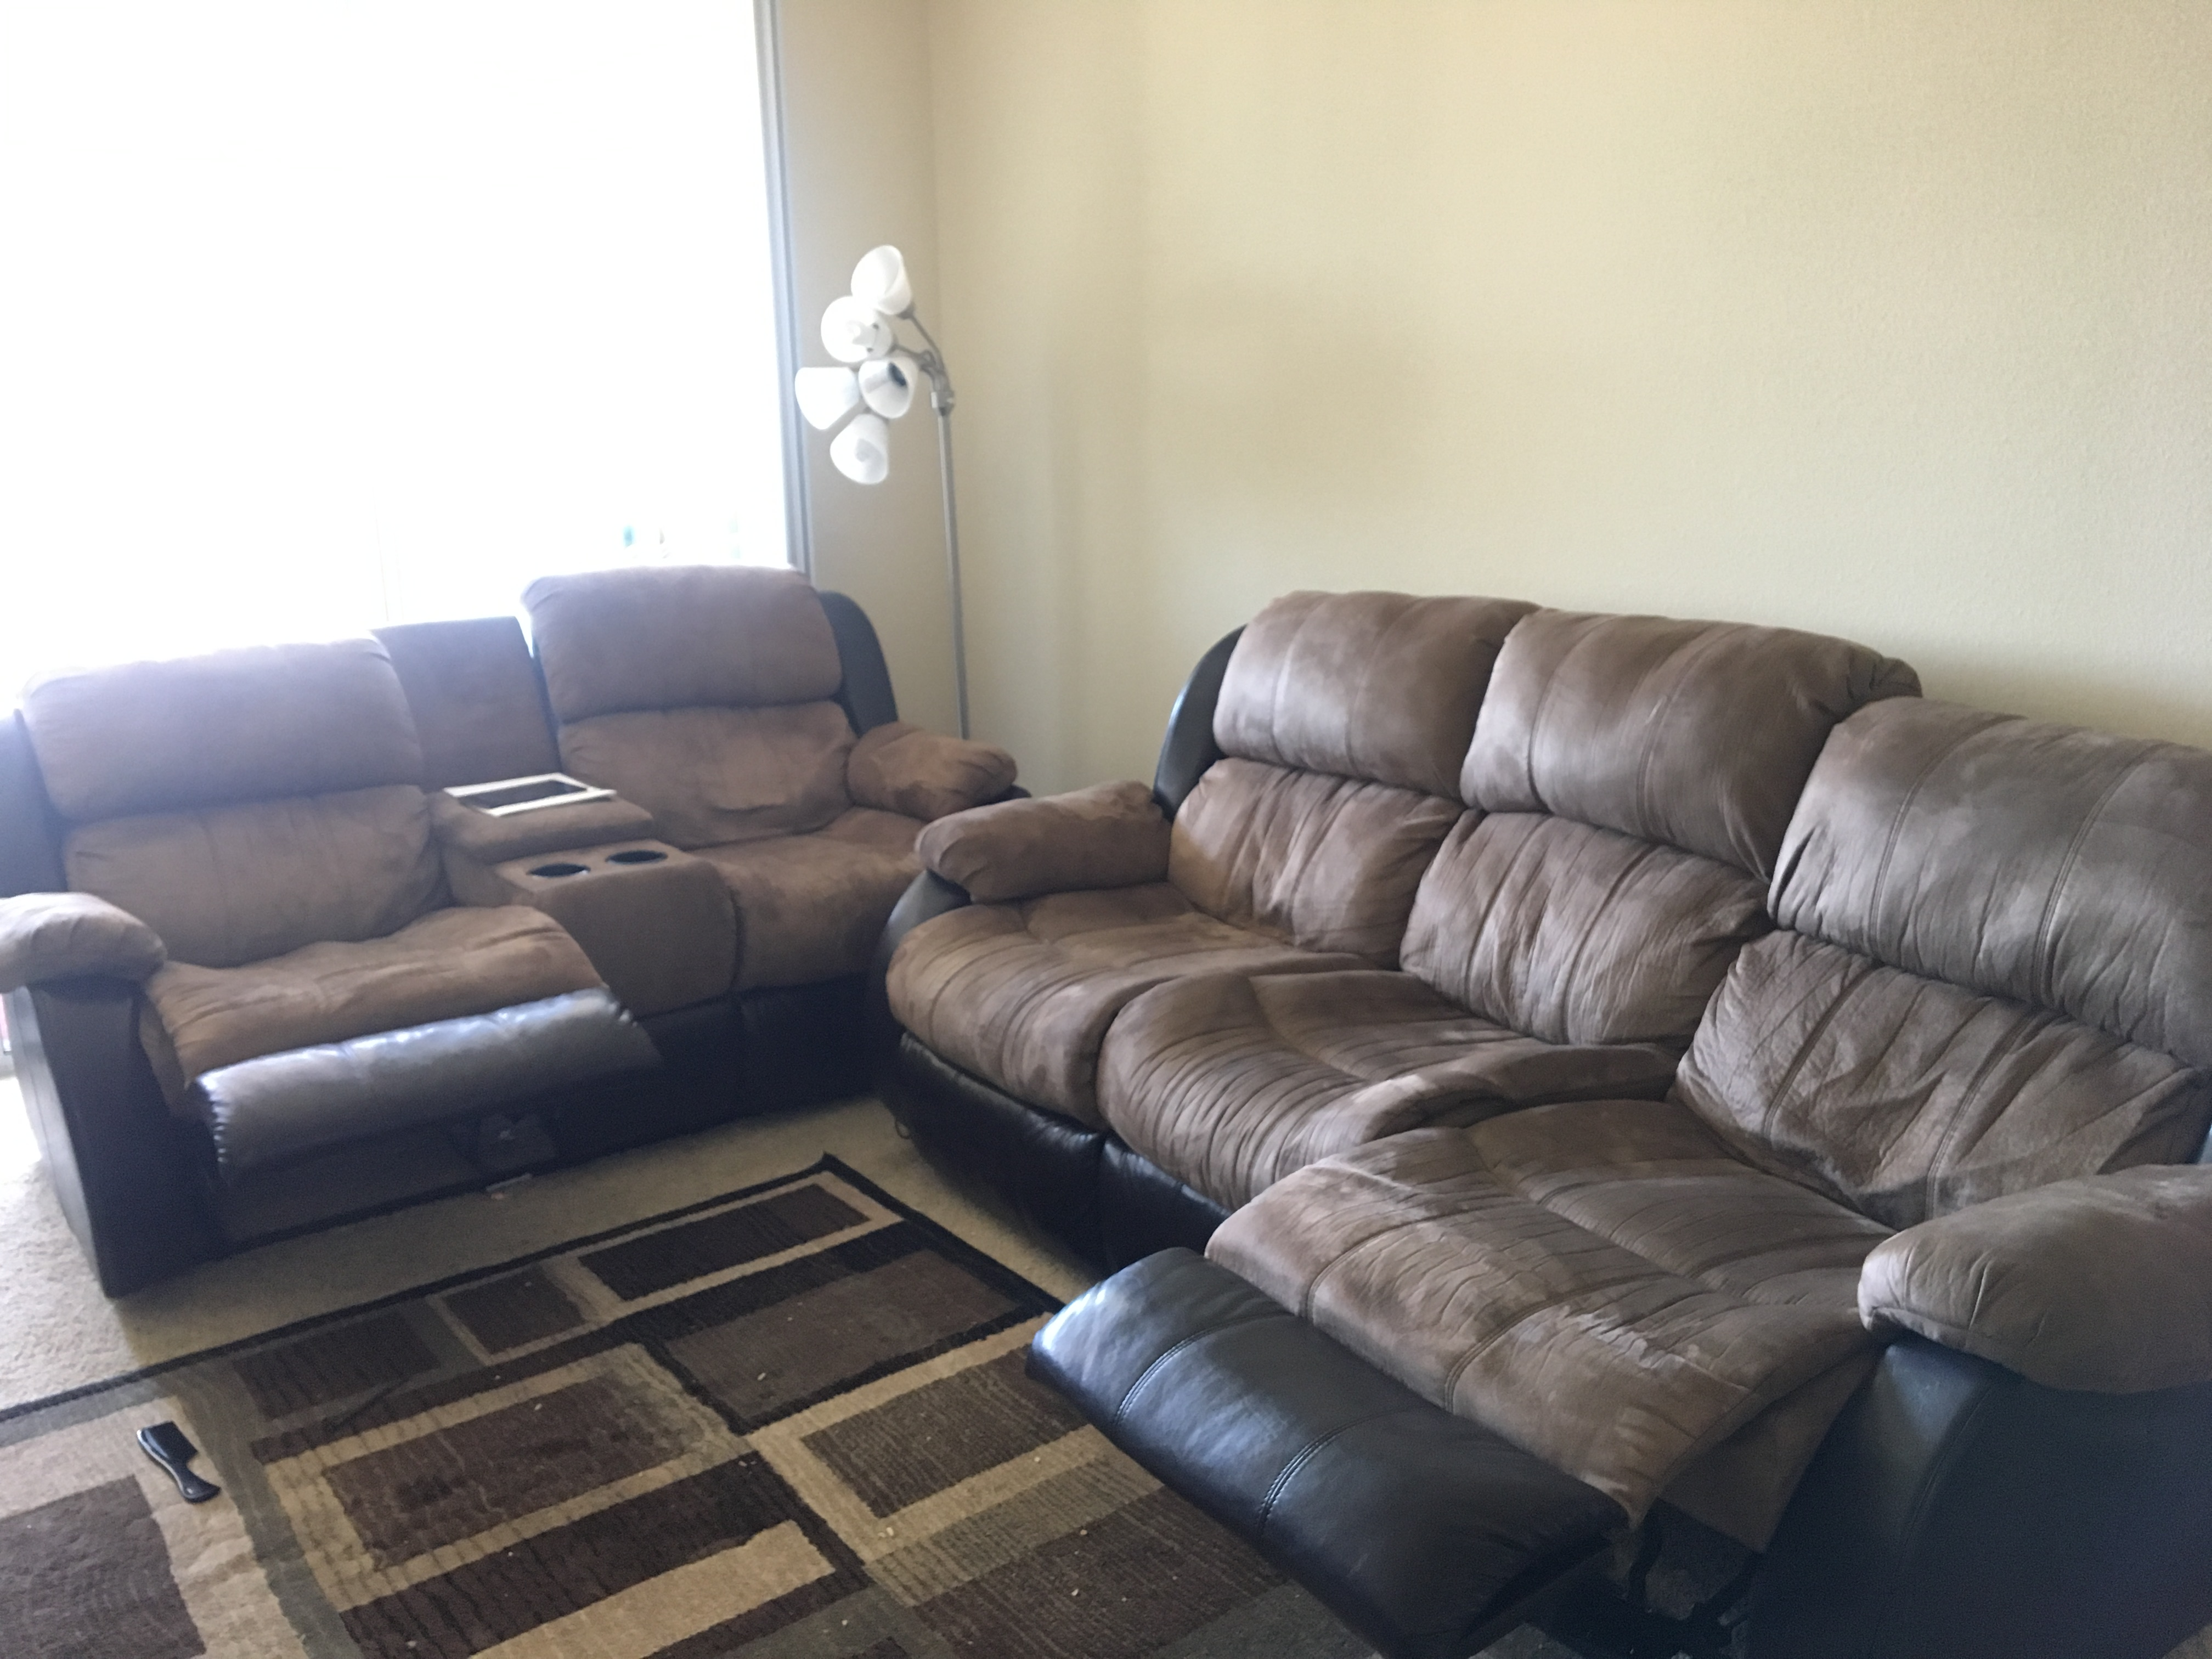 ashley reclining sofa disembly leather and fabric in same room recliner love seat connecting people